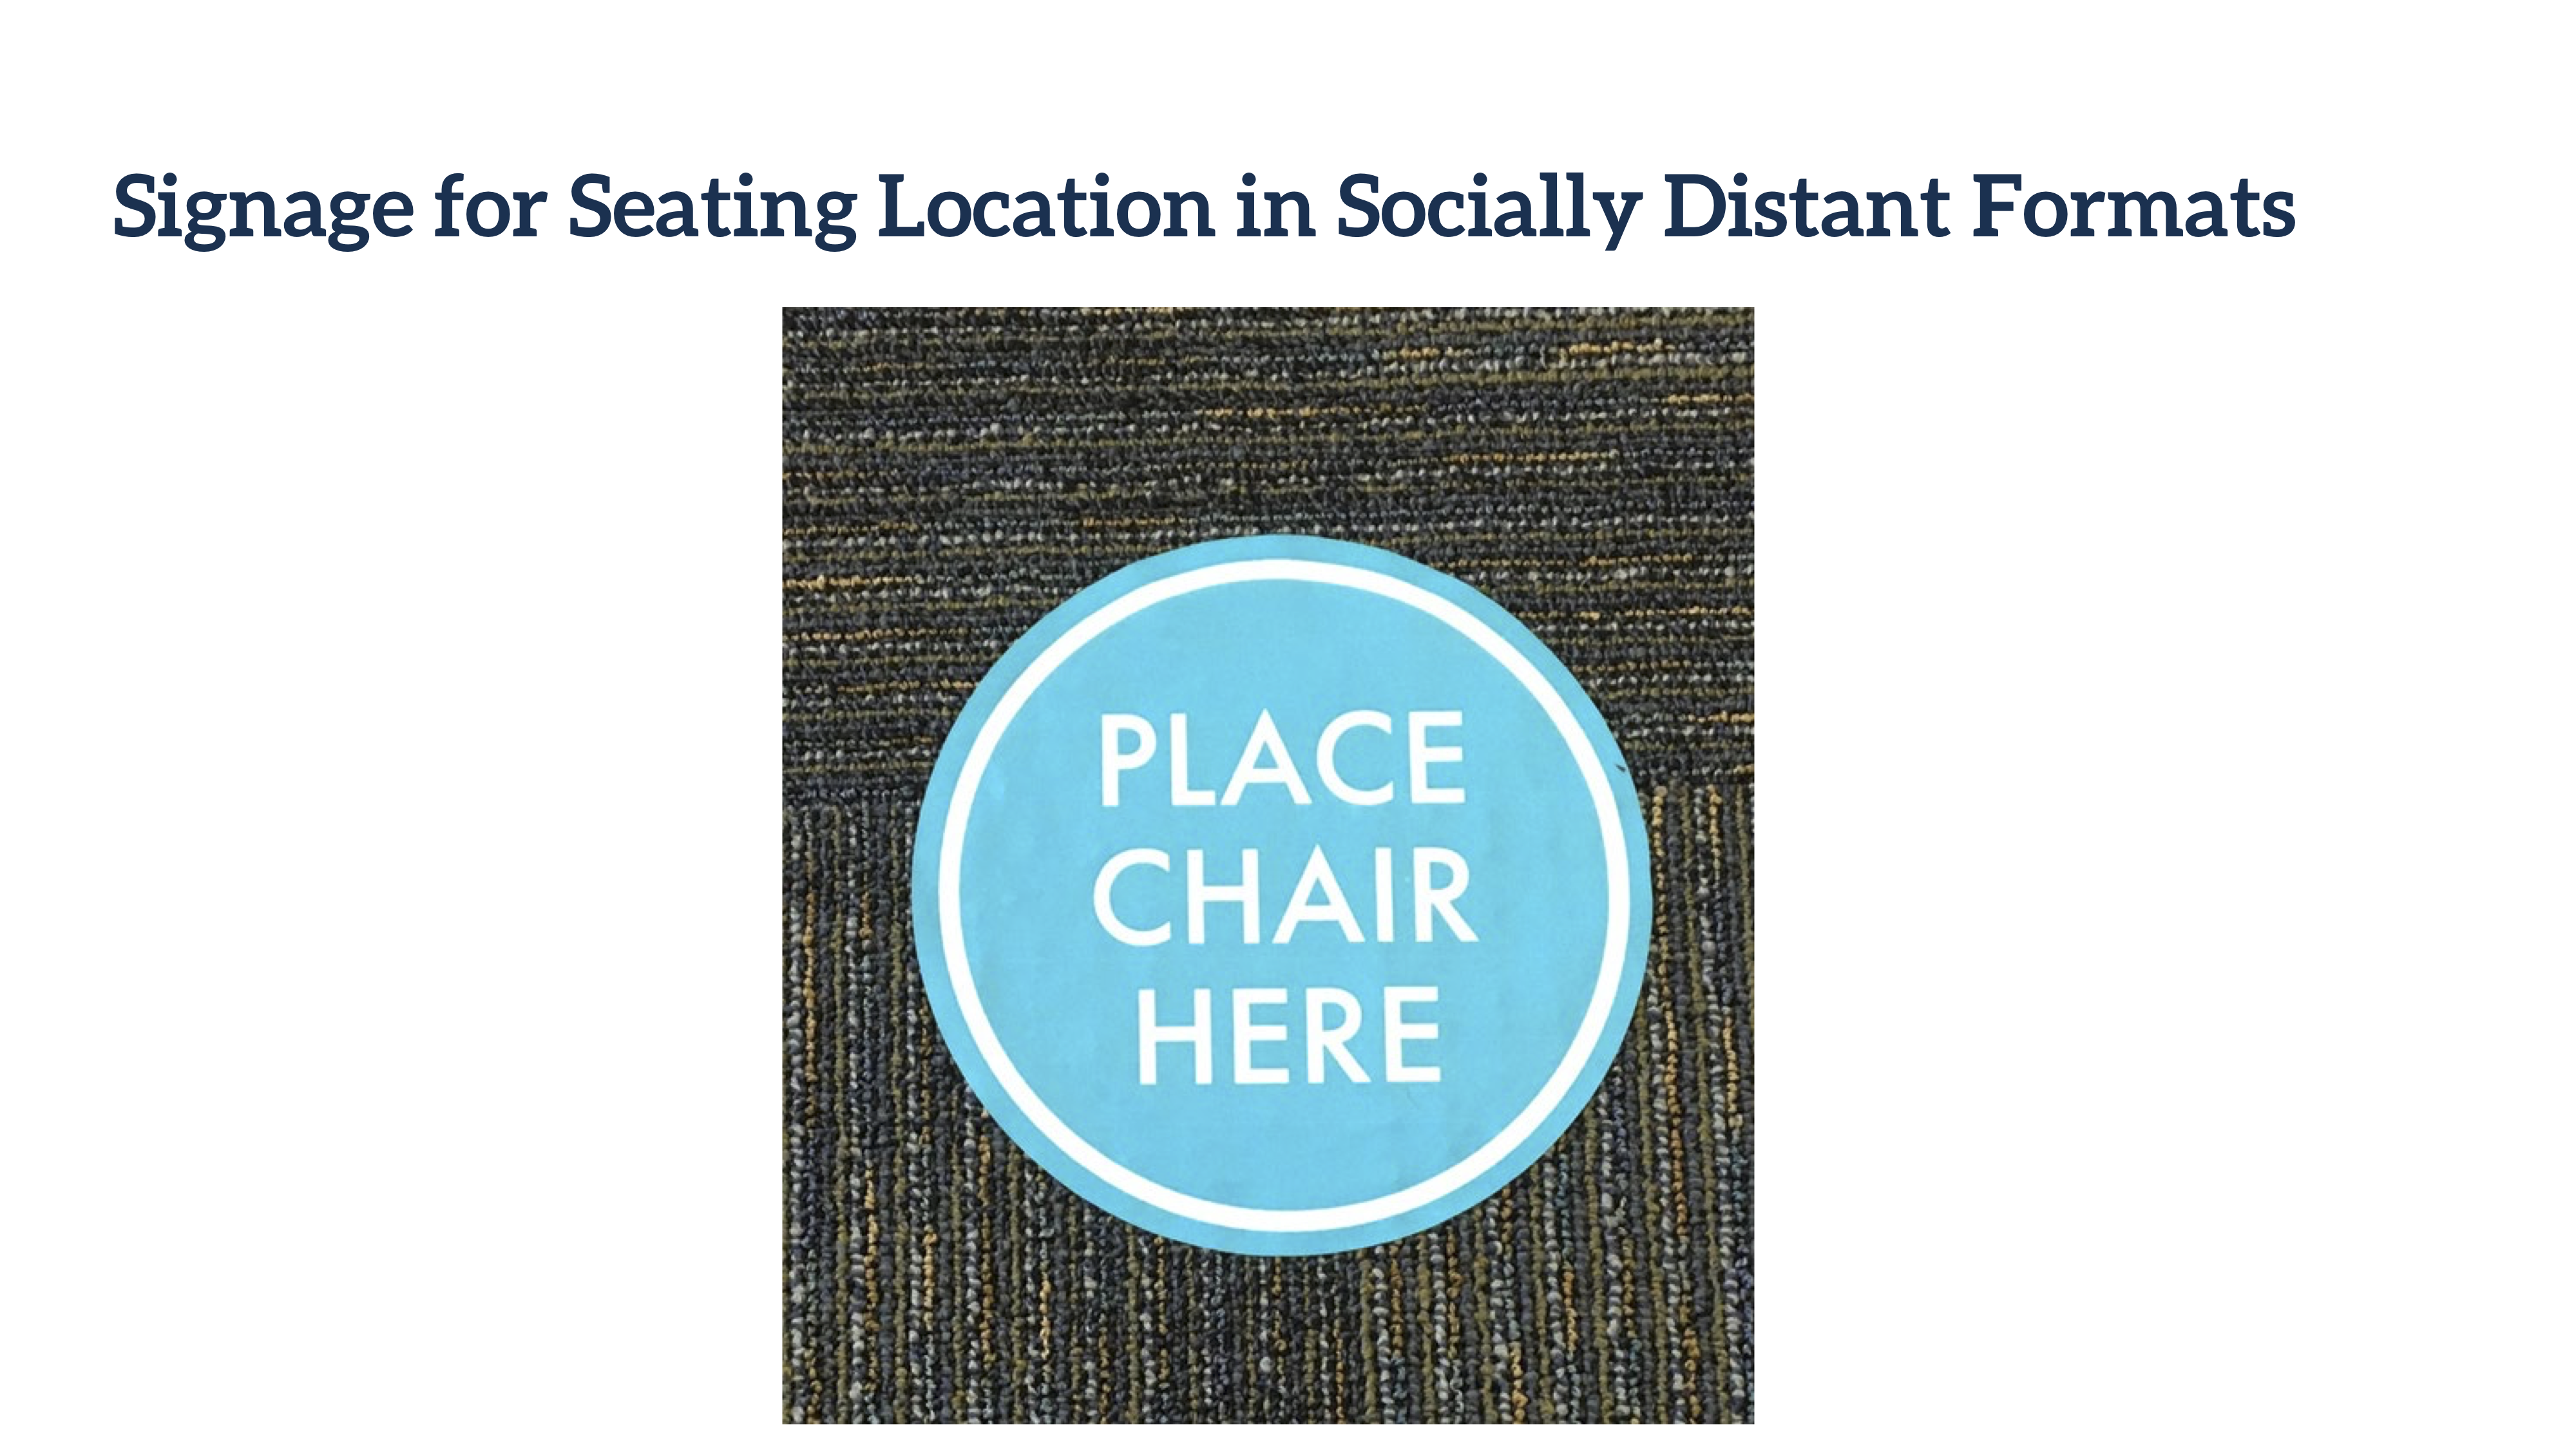 Blue Circle with Place Chair Here